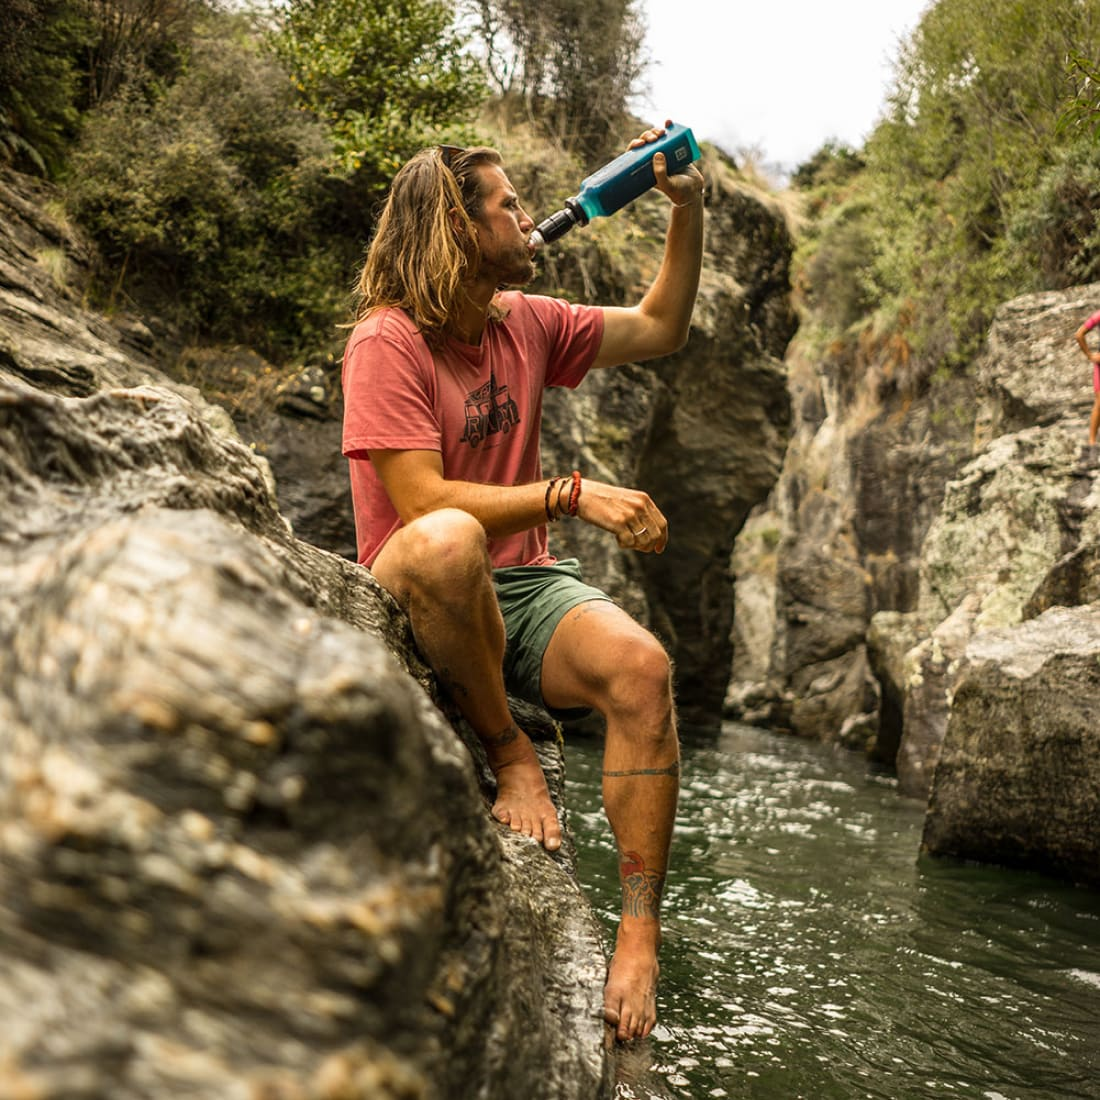 A hiker drinks from an S1 filter sitting next to a creek.